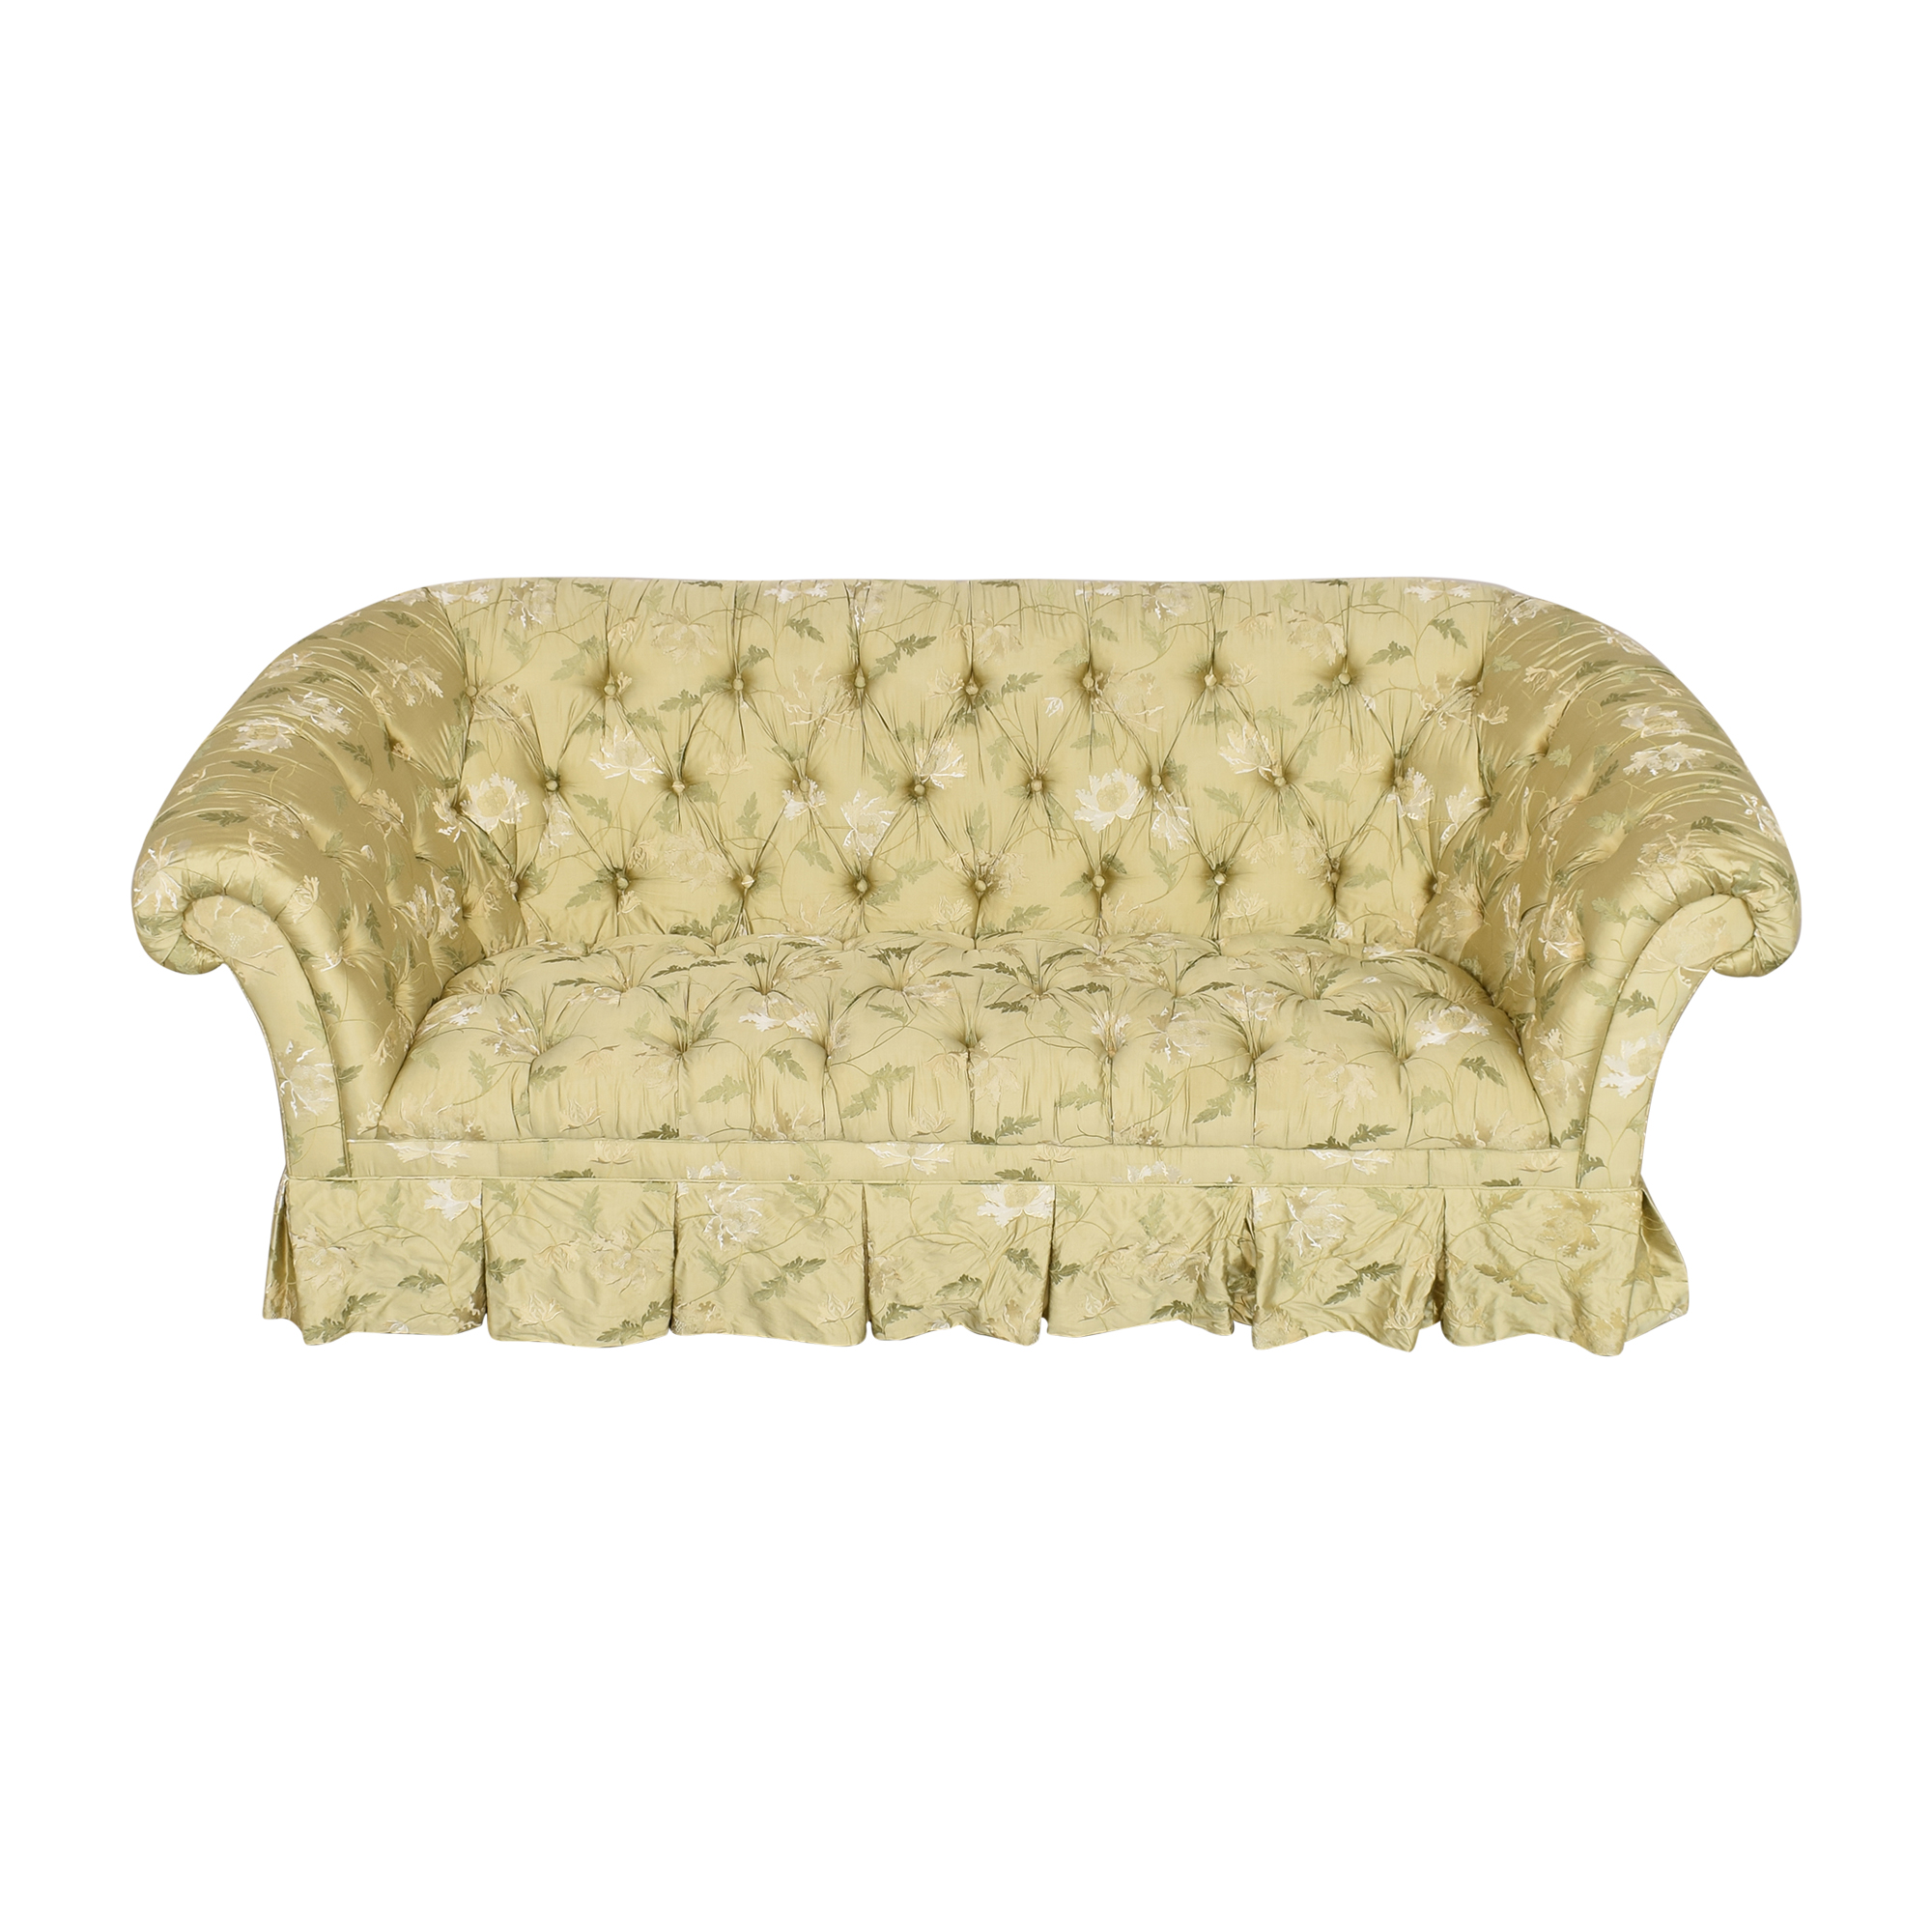 shop Lillian August Lillian August Chesterfield Floral Sofa online